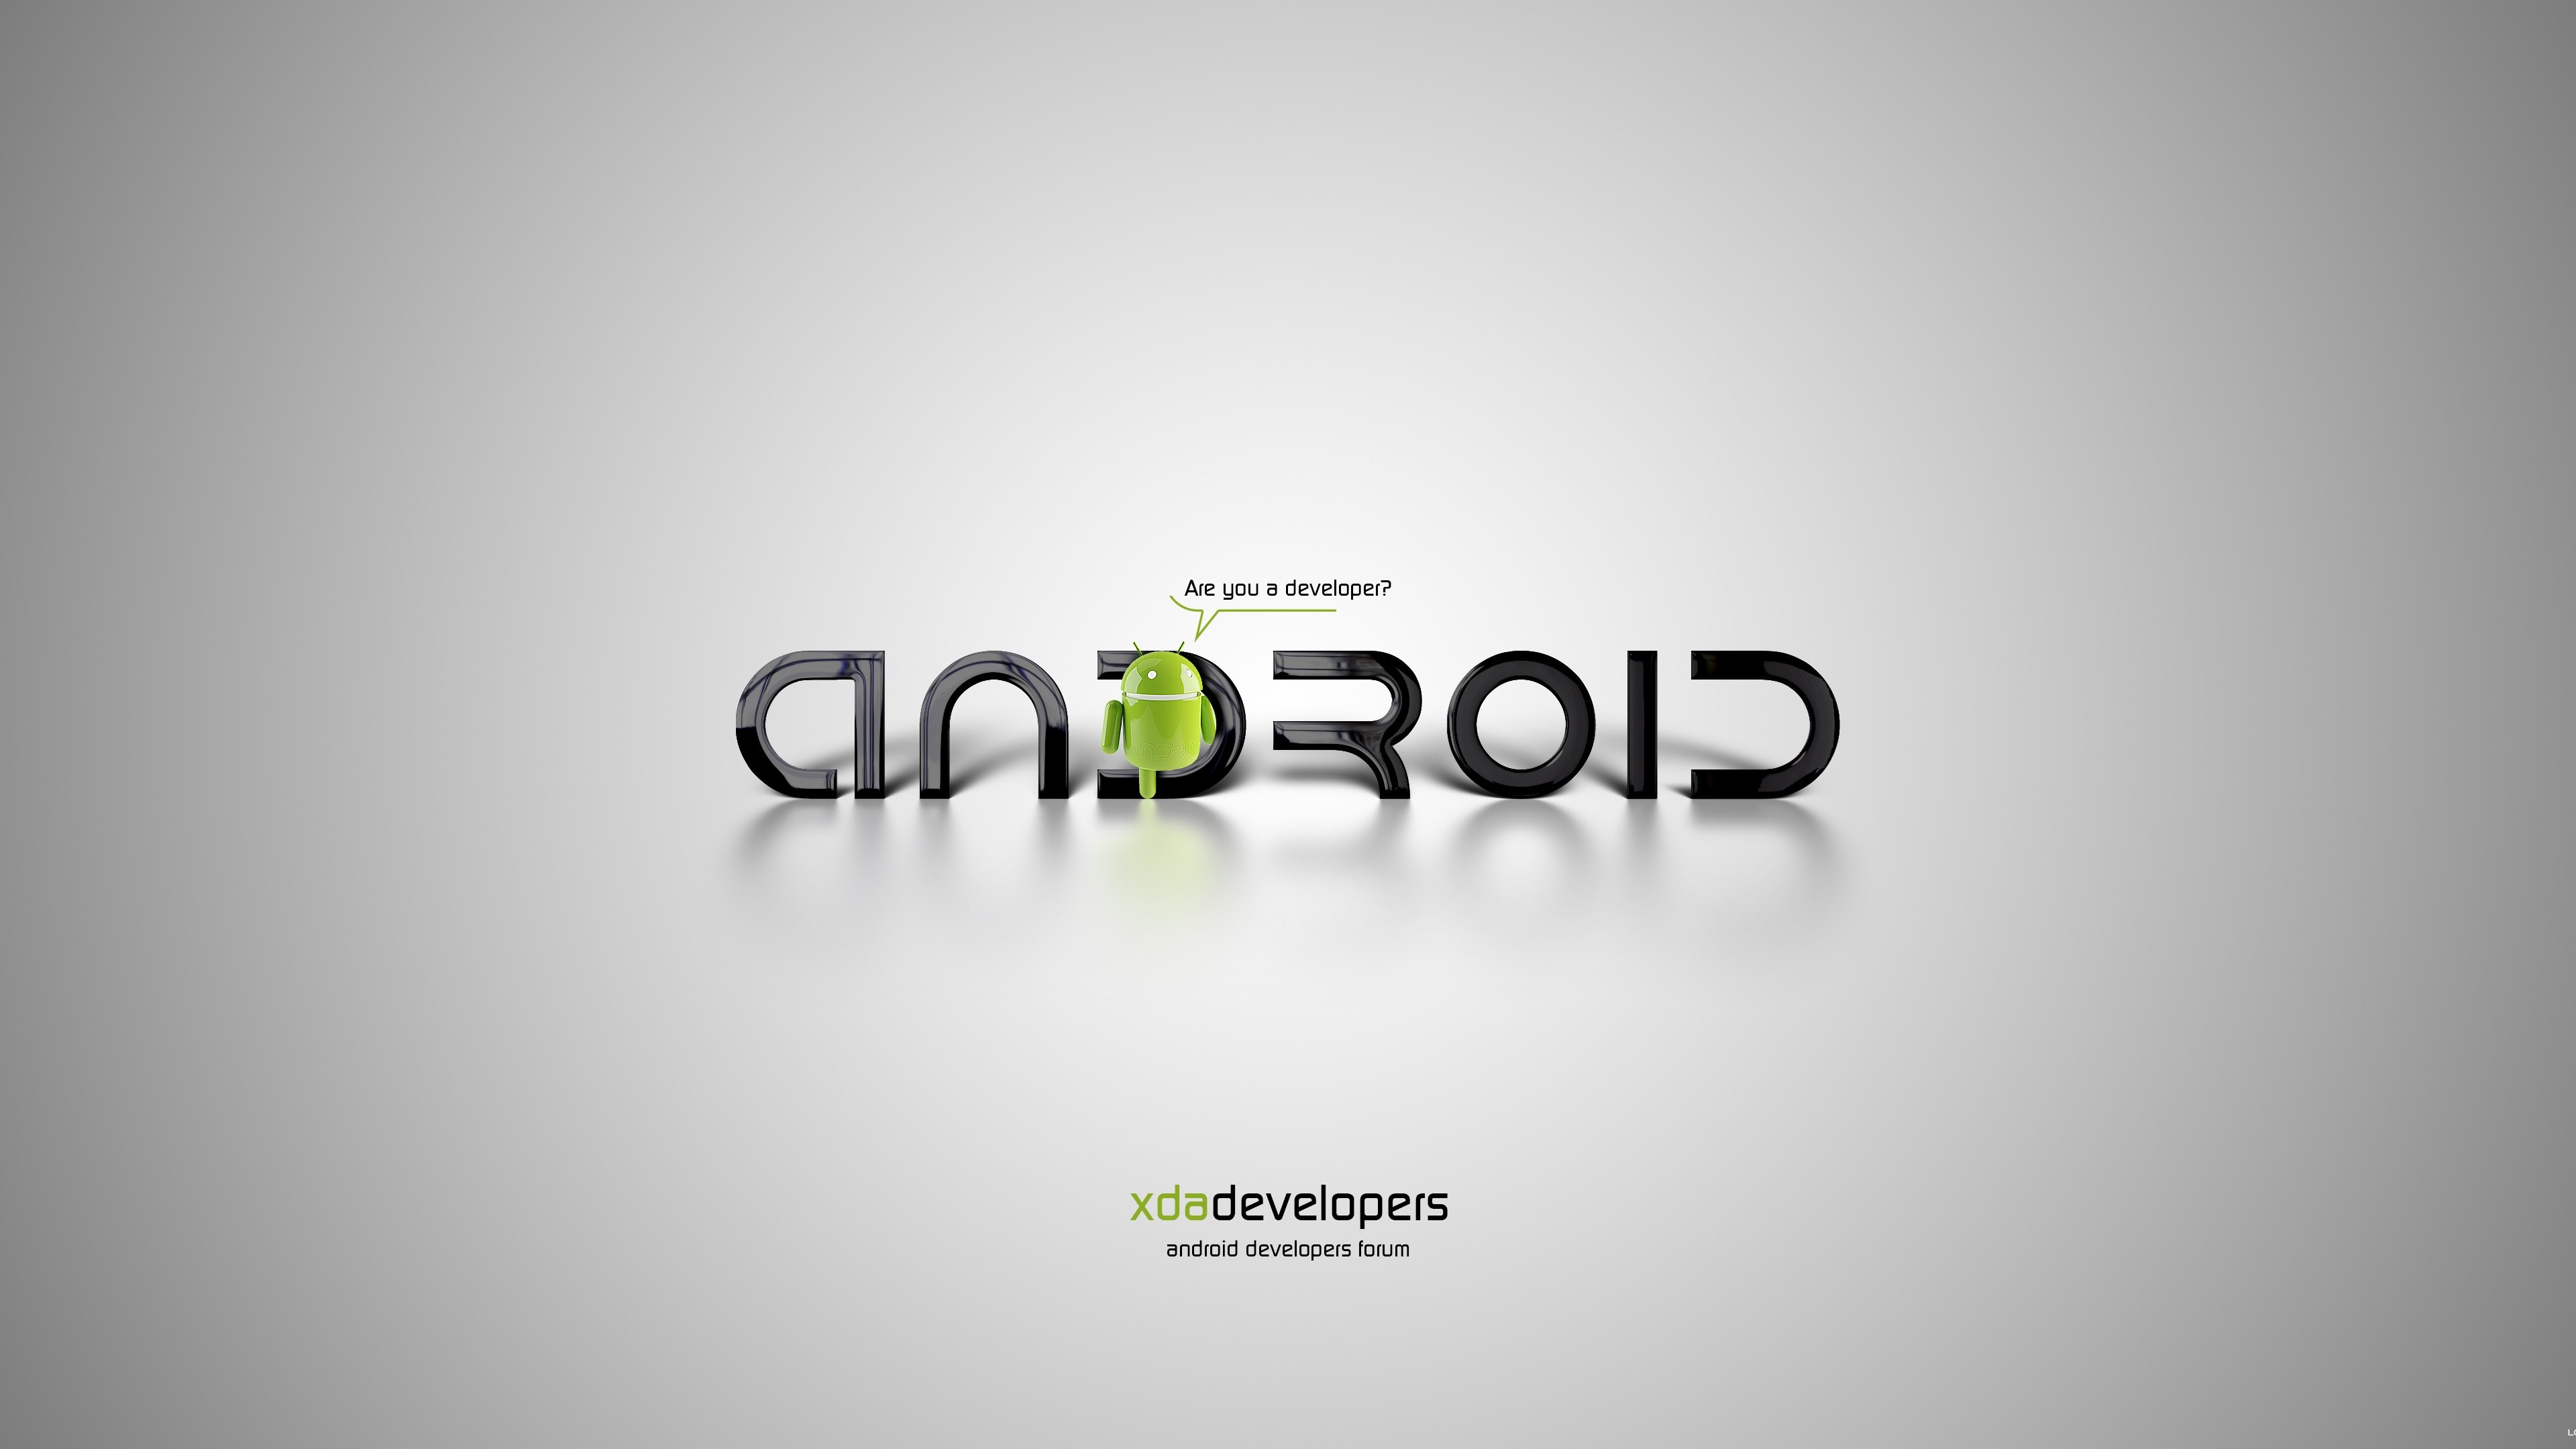 3840x2160 Android Developer Wallpaper - WallpaperSafari